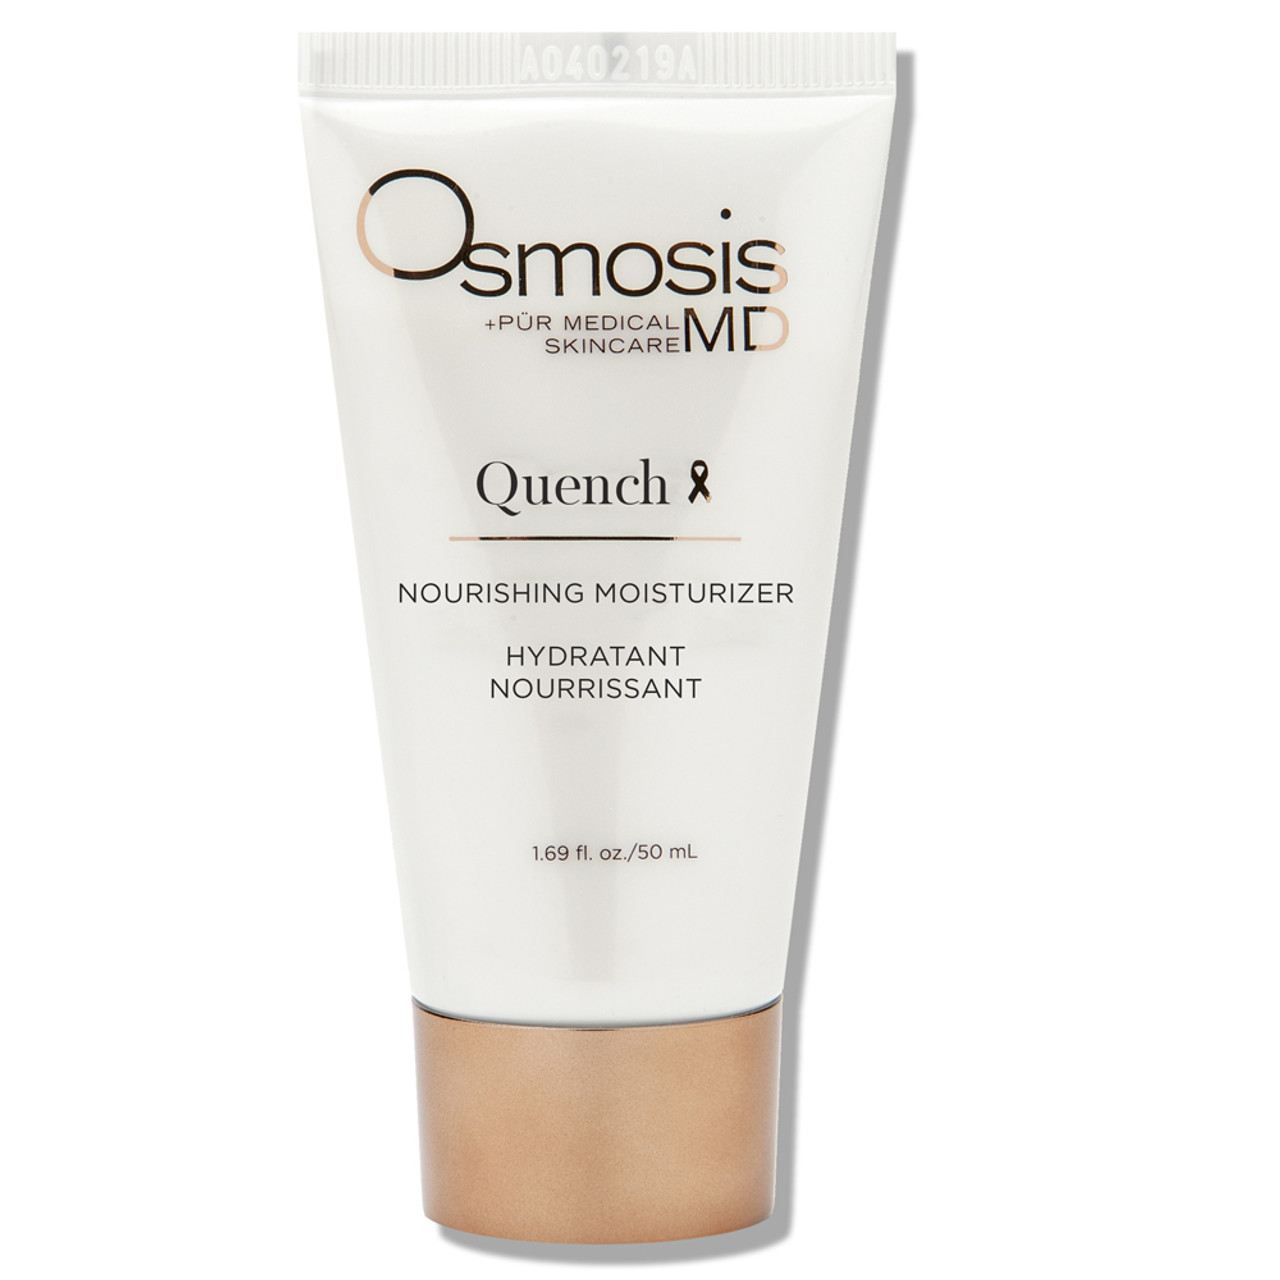 Osmosis +Skincare MD Quench - Nourishing Moisturizer